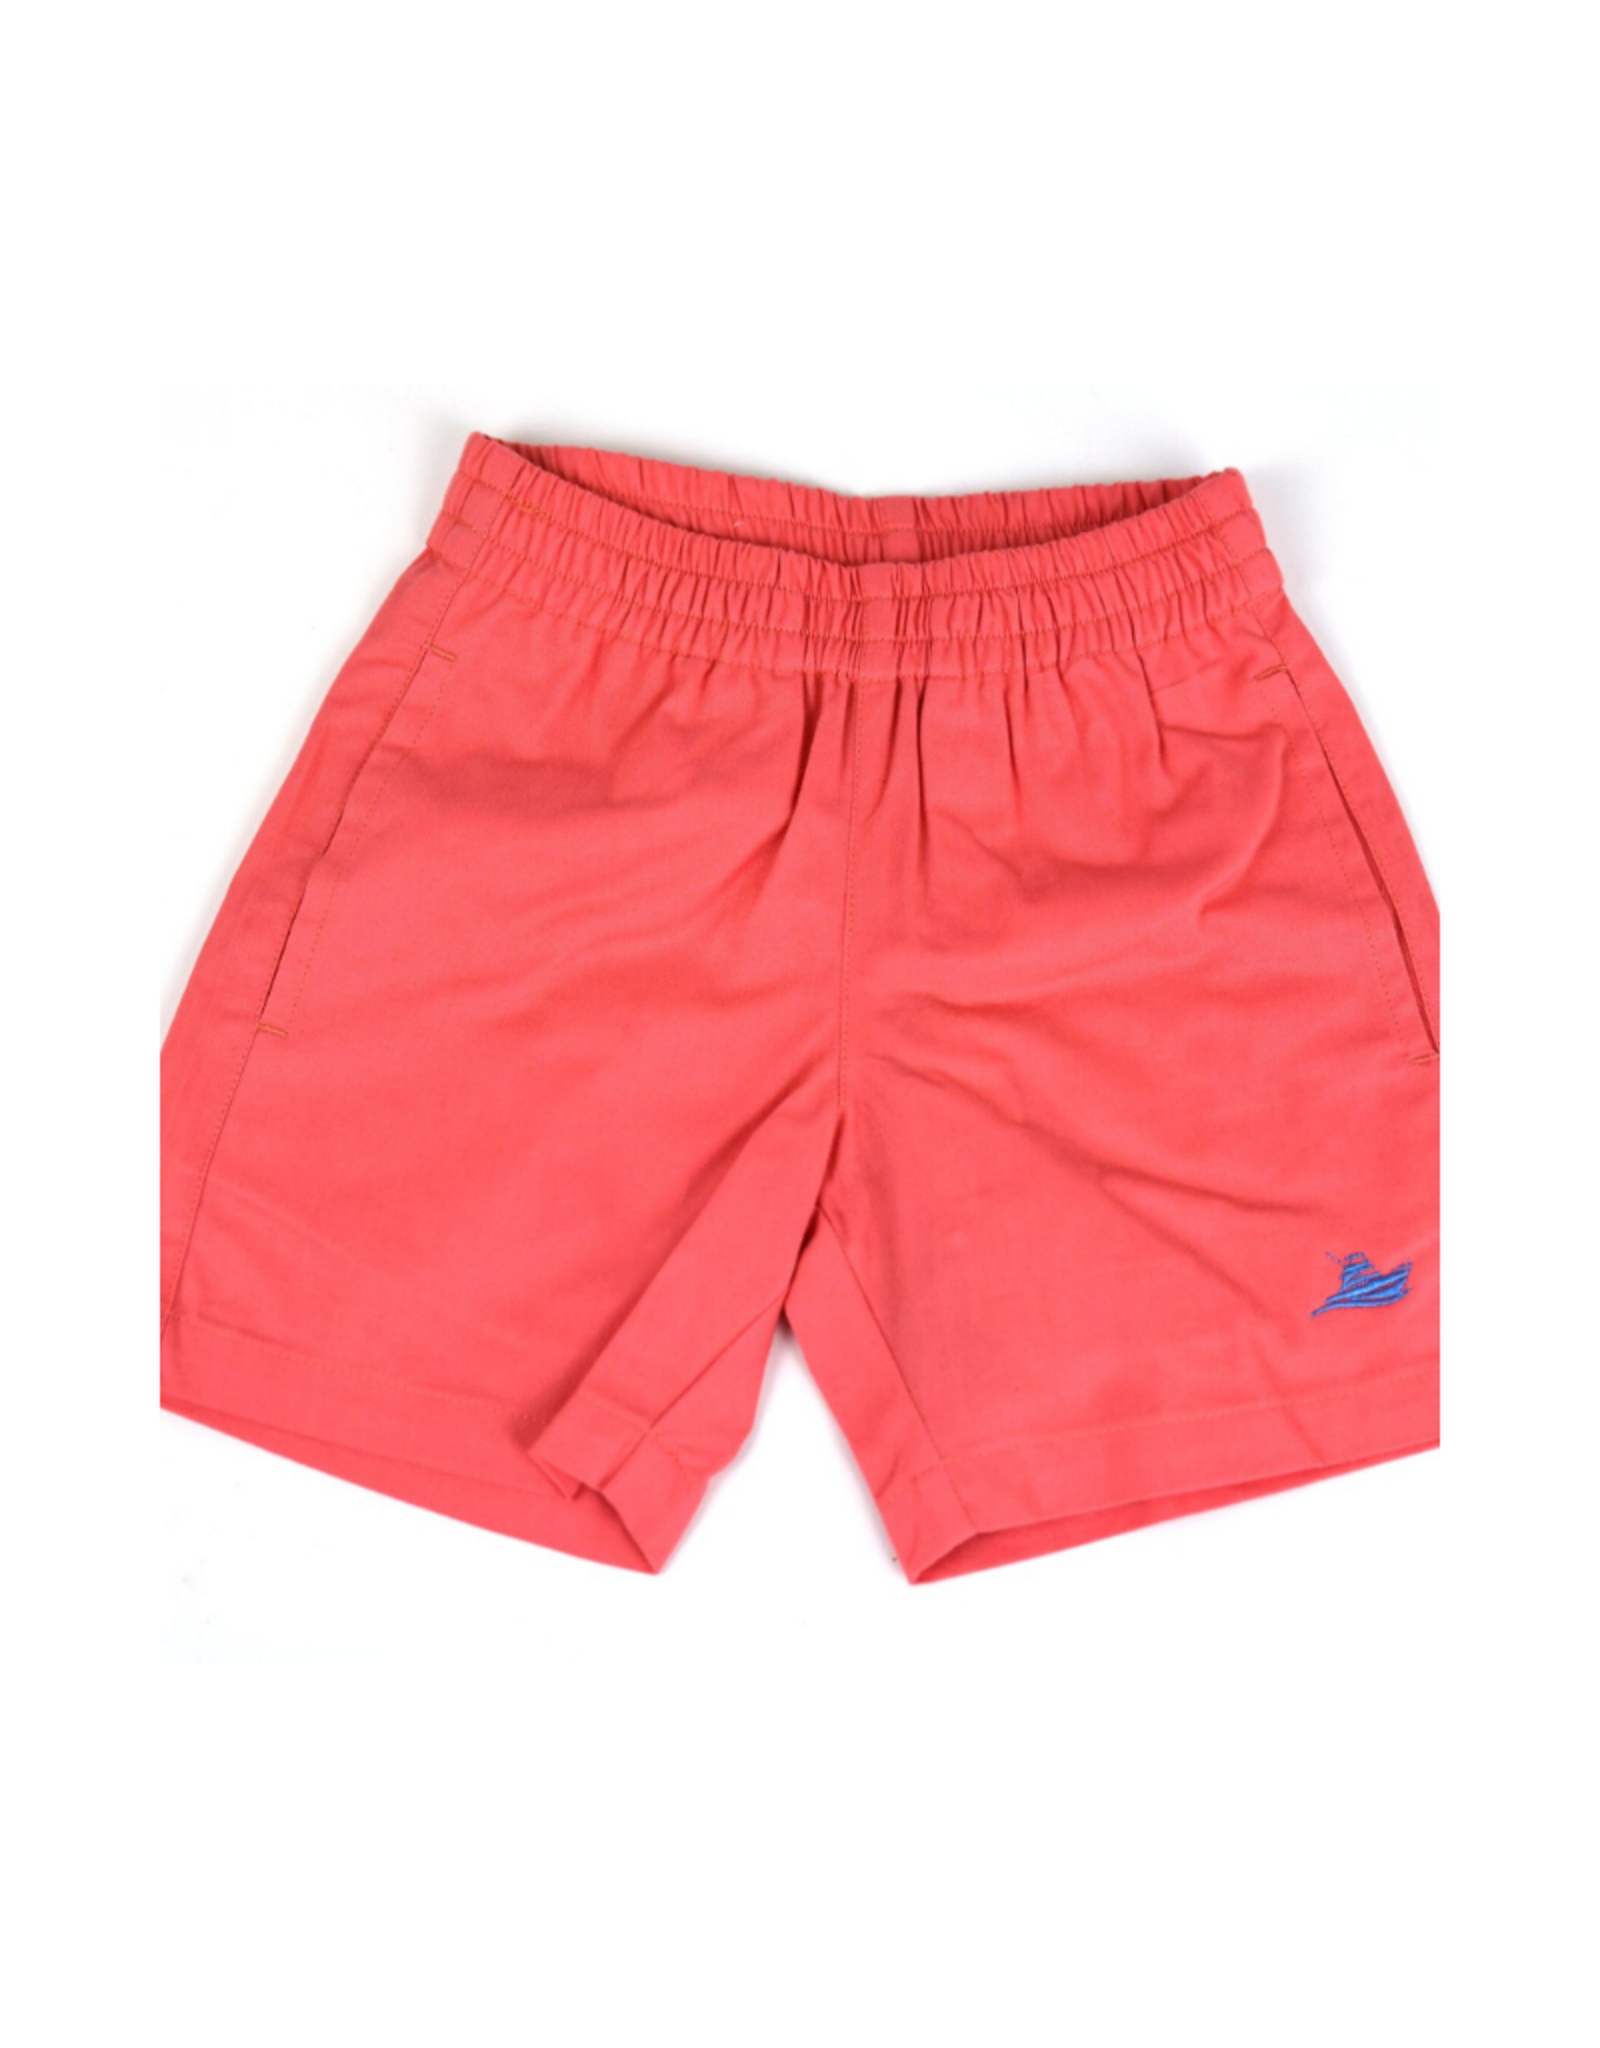 SouthBound Red Elastic Waistband Shorts